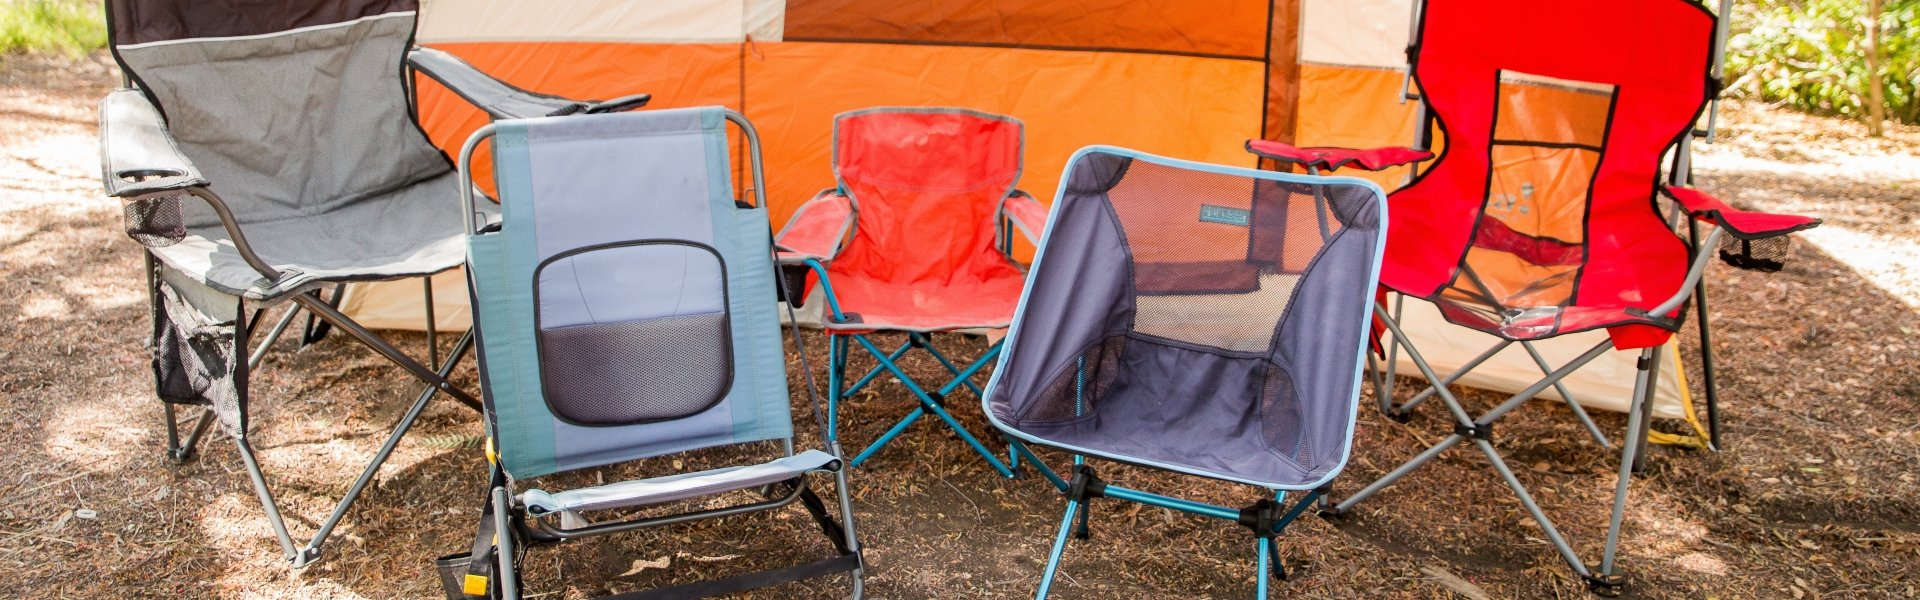 camping-chairs-2x1-fullres-28